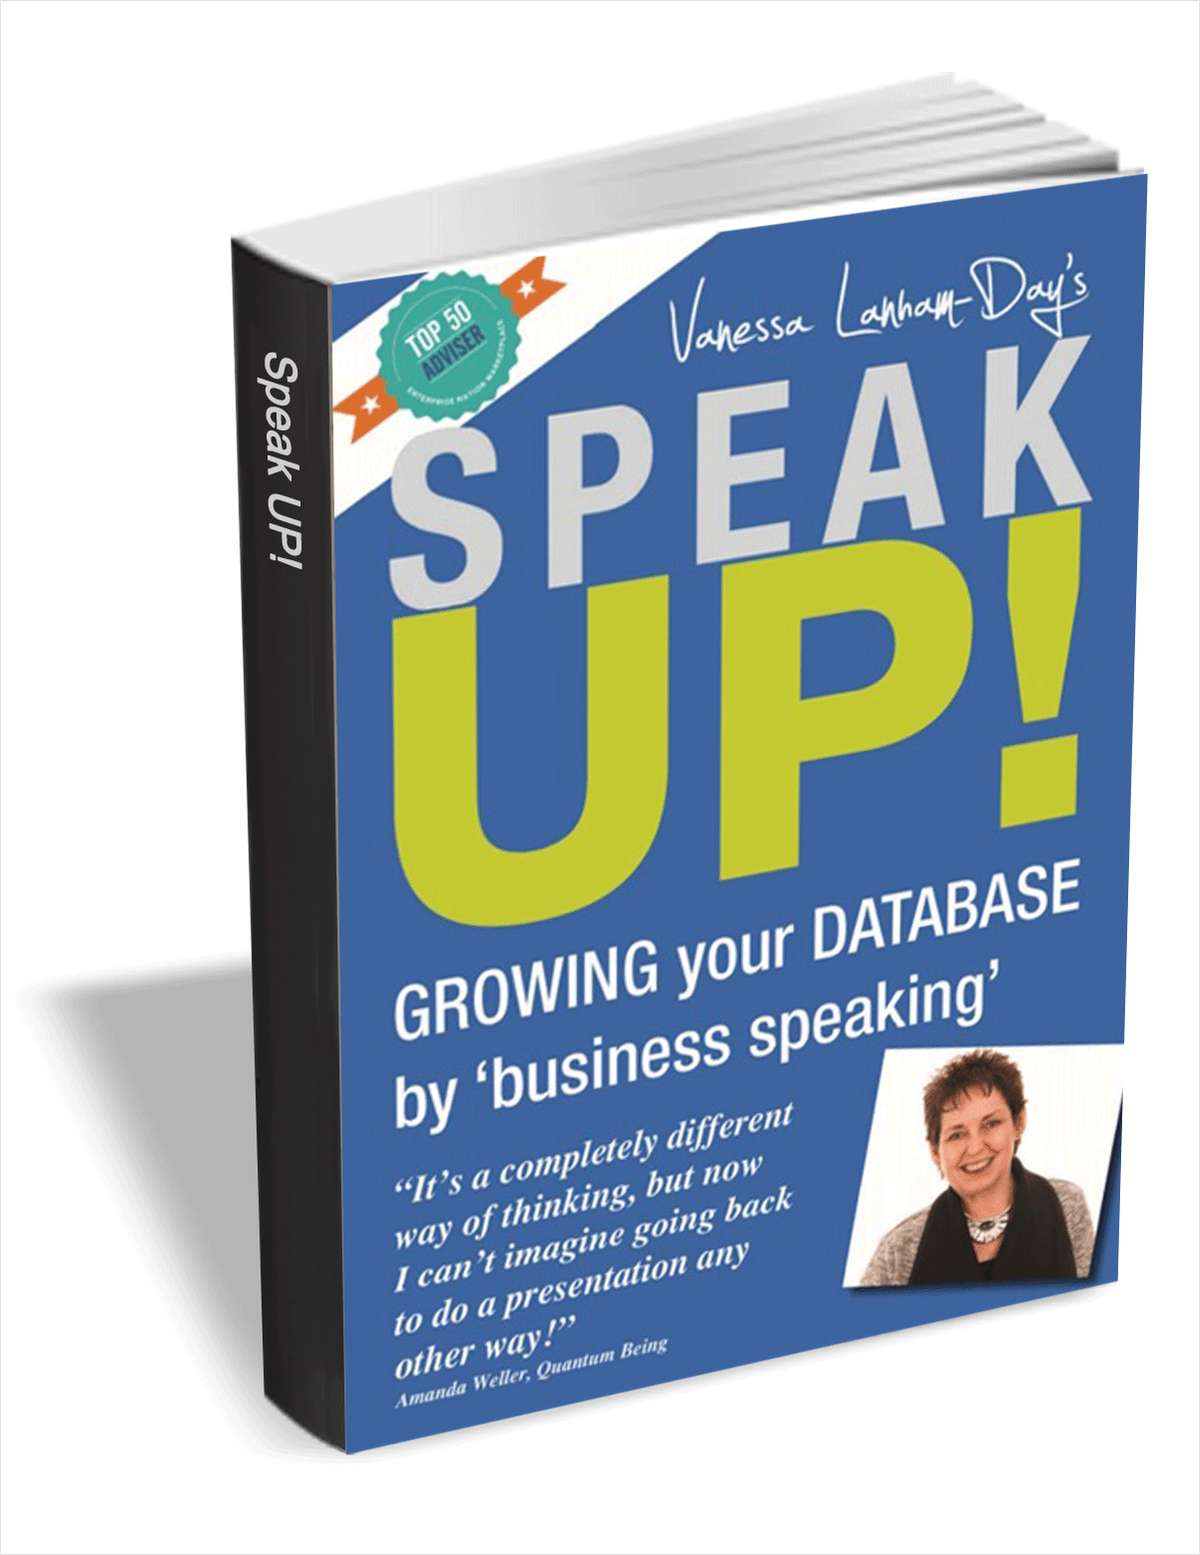 Speak Up - Growing Your Database by 'Business Speaking'